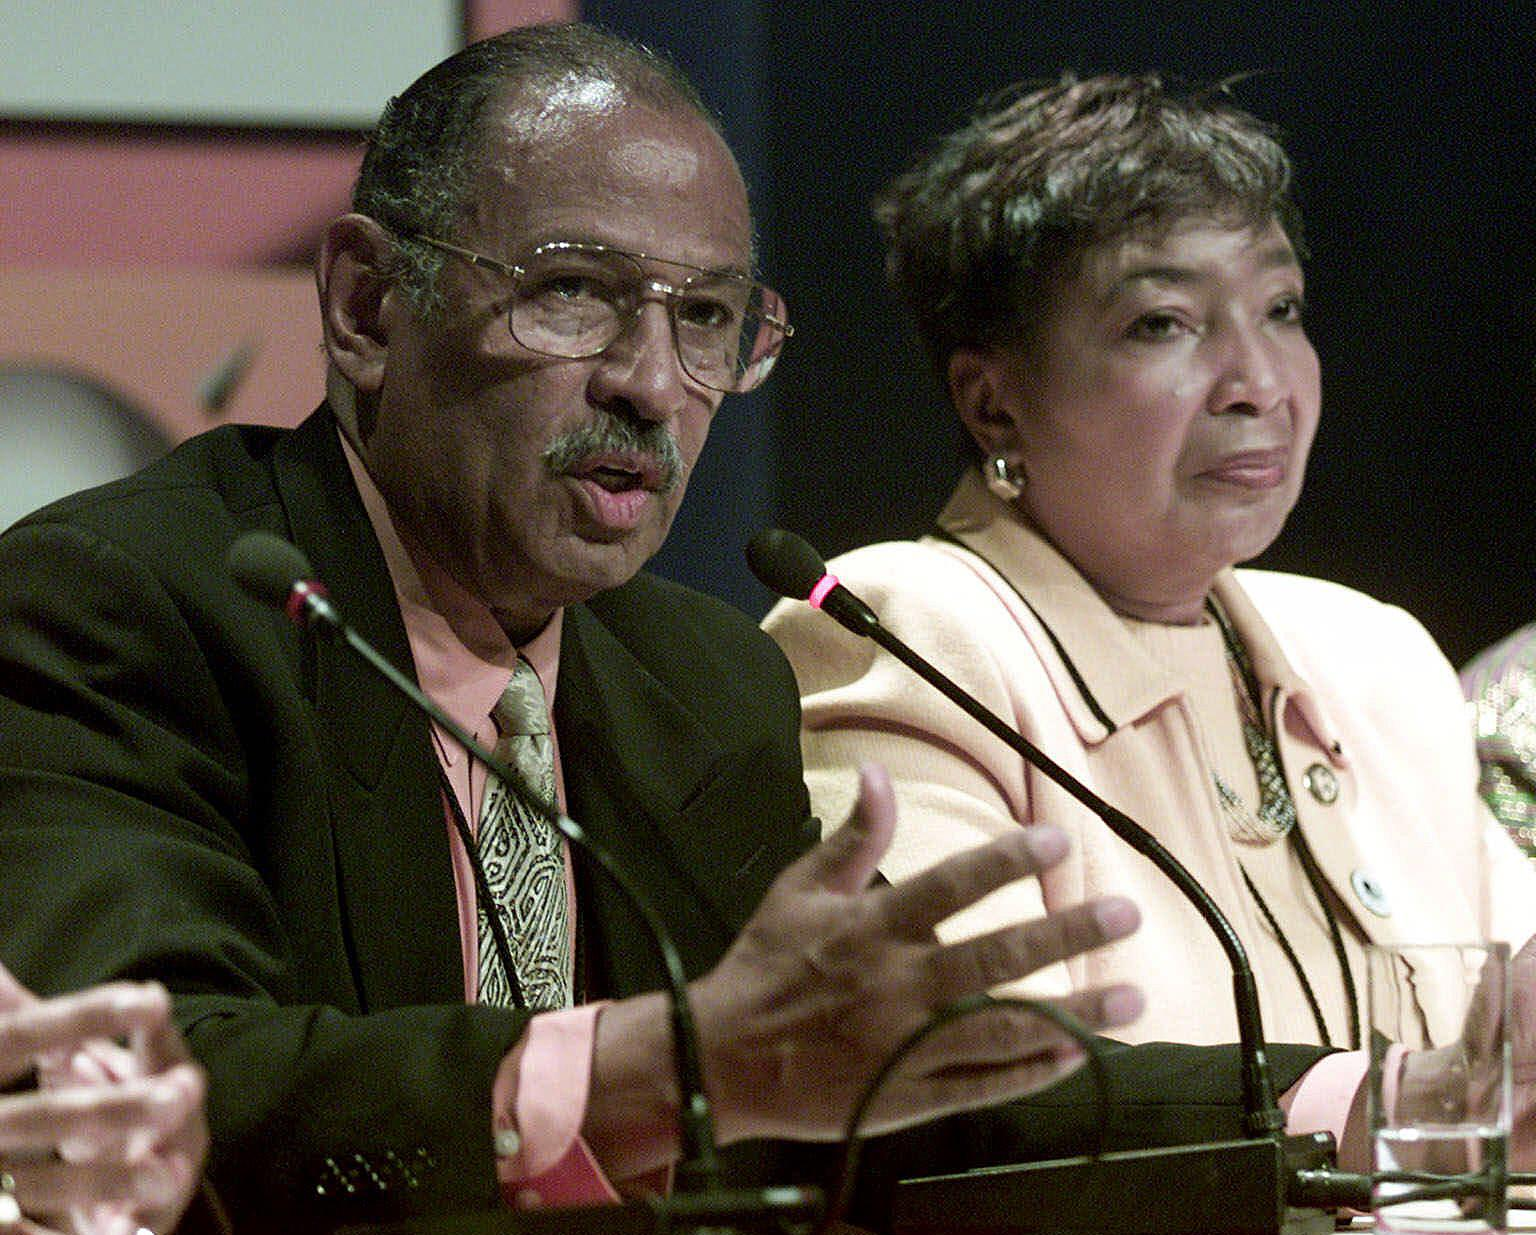 FILE - In this Sept. 2, 2001 file photo, Rep. Eddie Bernice Johnson, D-Texas, right, and Rep. John Conyers, D-Mich. are seen in Durban, South Africa. For two decades, Johnson has been an outspoken voice for Democrats in a bright blazer and multicolored scarf. But for the first time, the first black woman to represent North Texas in Congress is facing serious opposition in this month's primary. And the effort to unseat her is just one of several challenges being mounted against some of the longest-serving blacks in Congress. (AP Photo / Obed Zilwa, File)